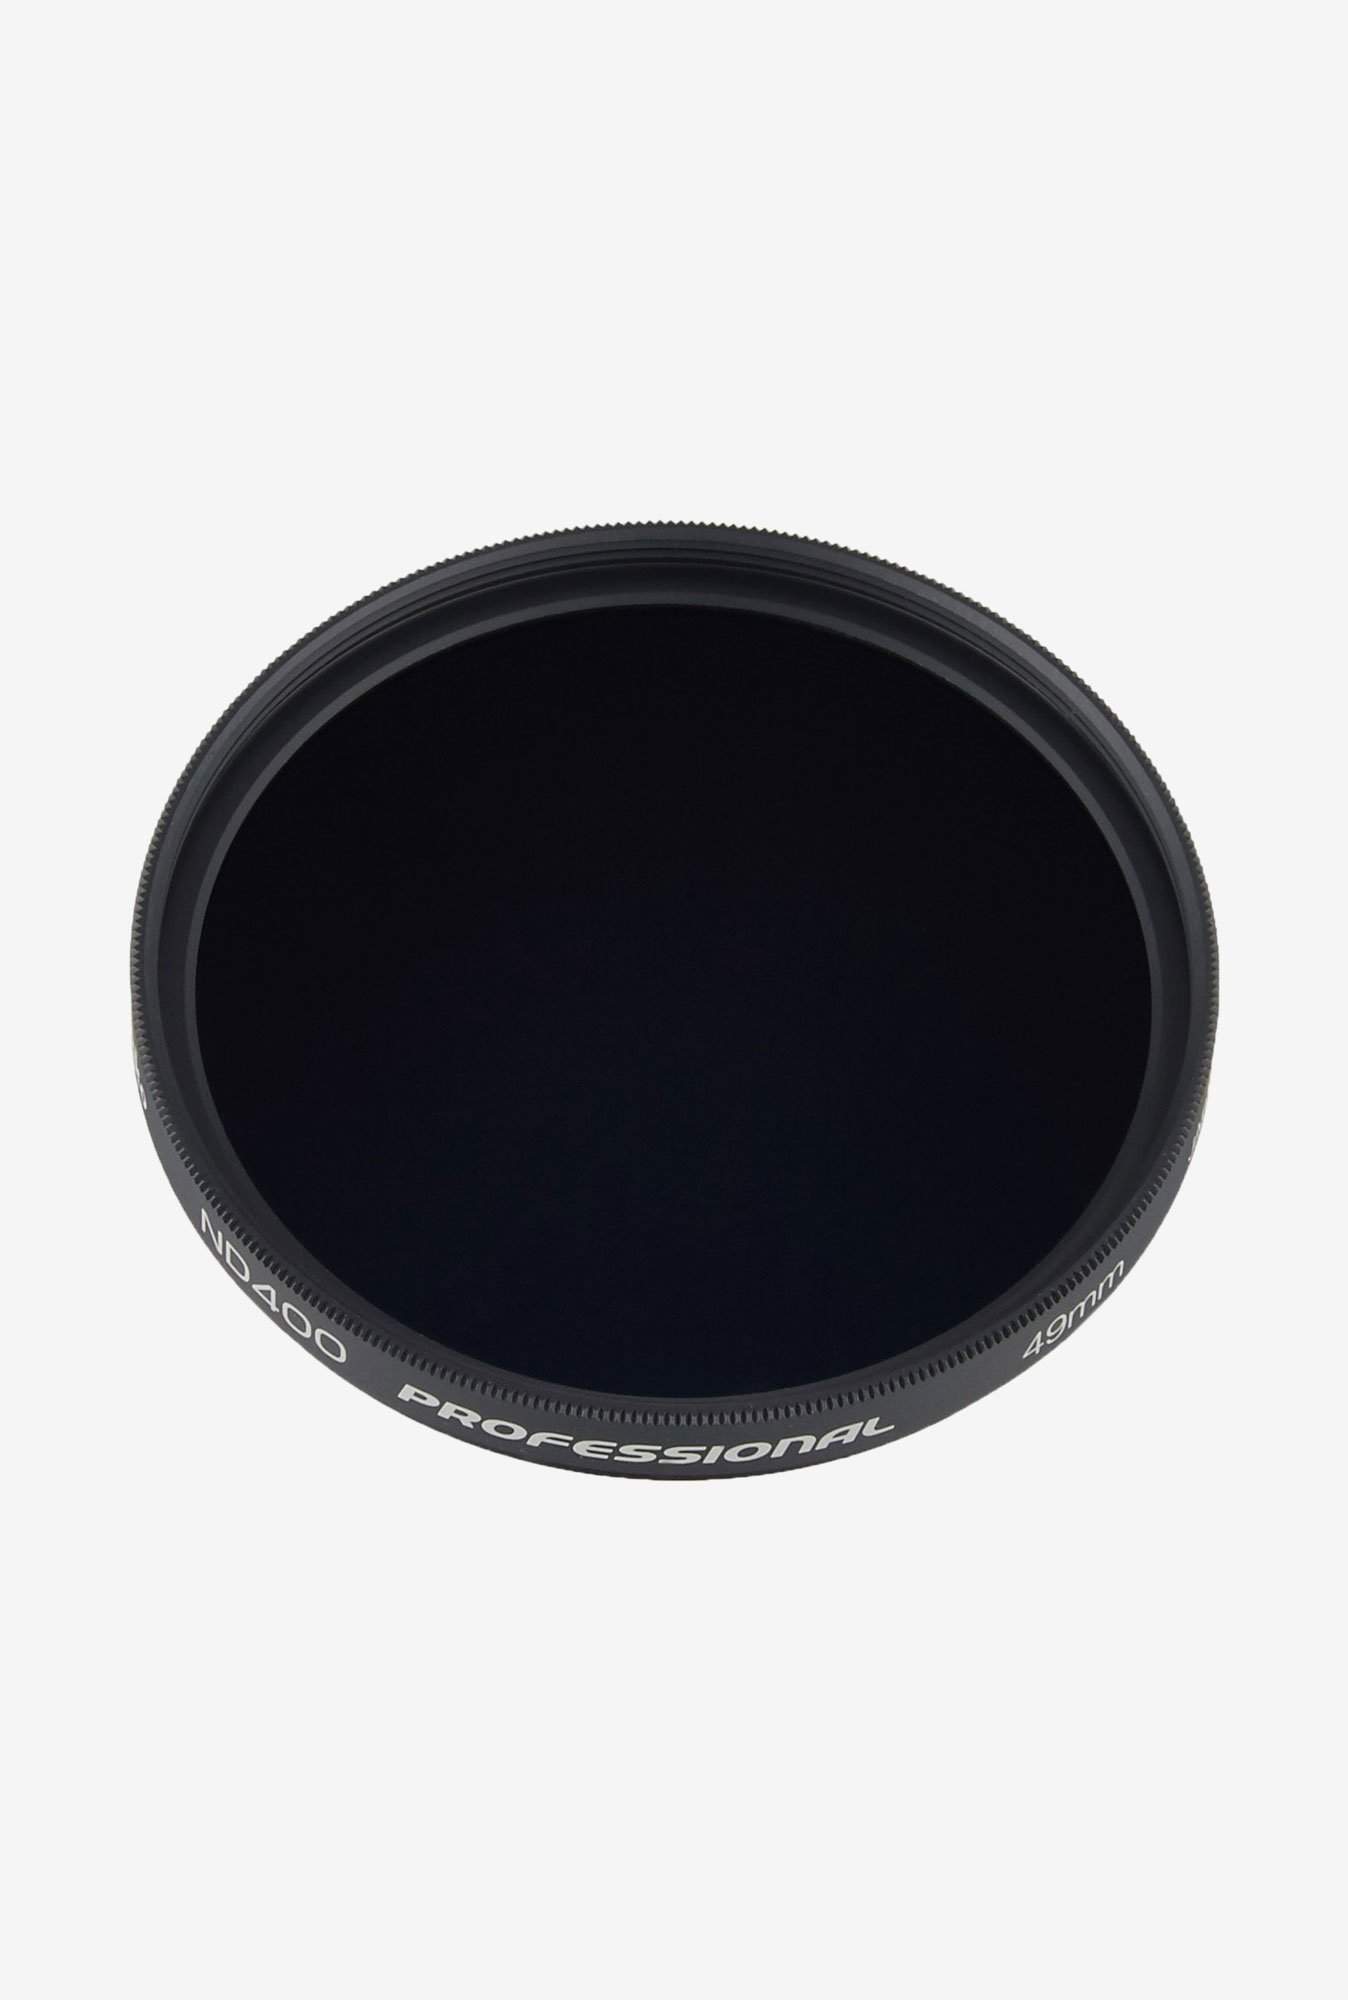 Kenko 77mm ND400 Multicoated Camera Lens Filter (Black)